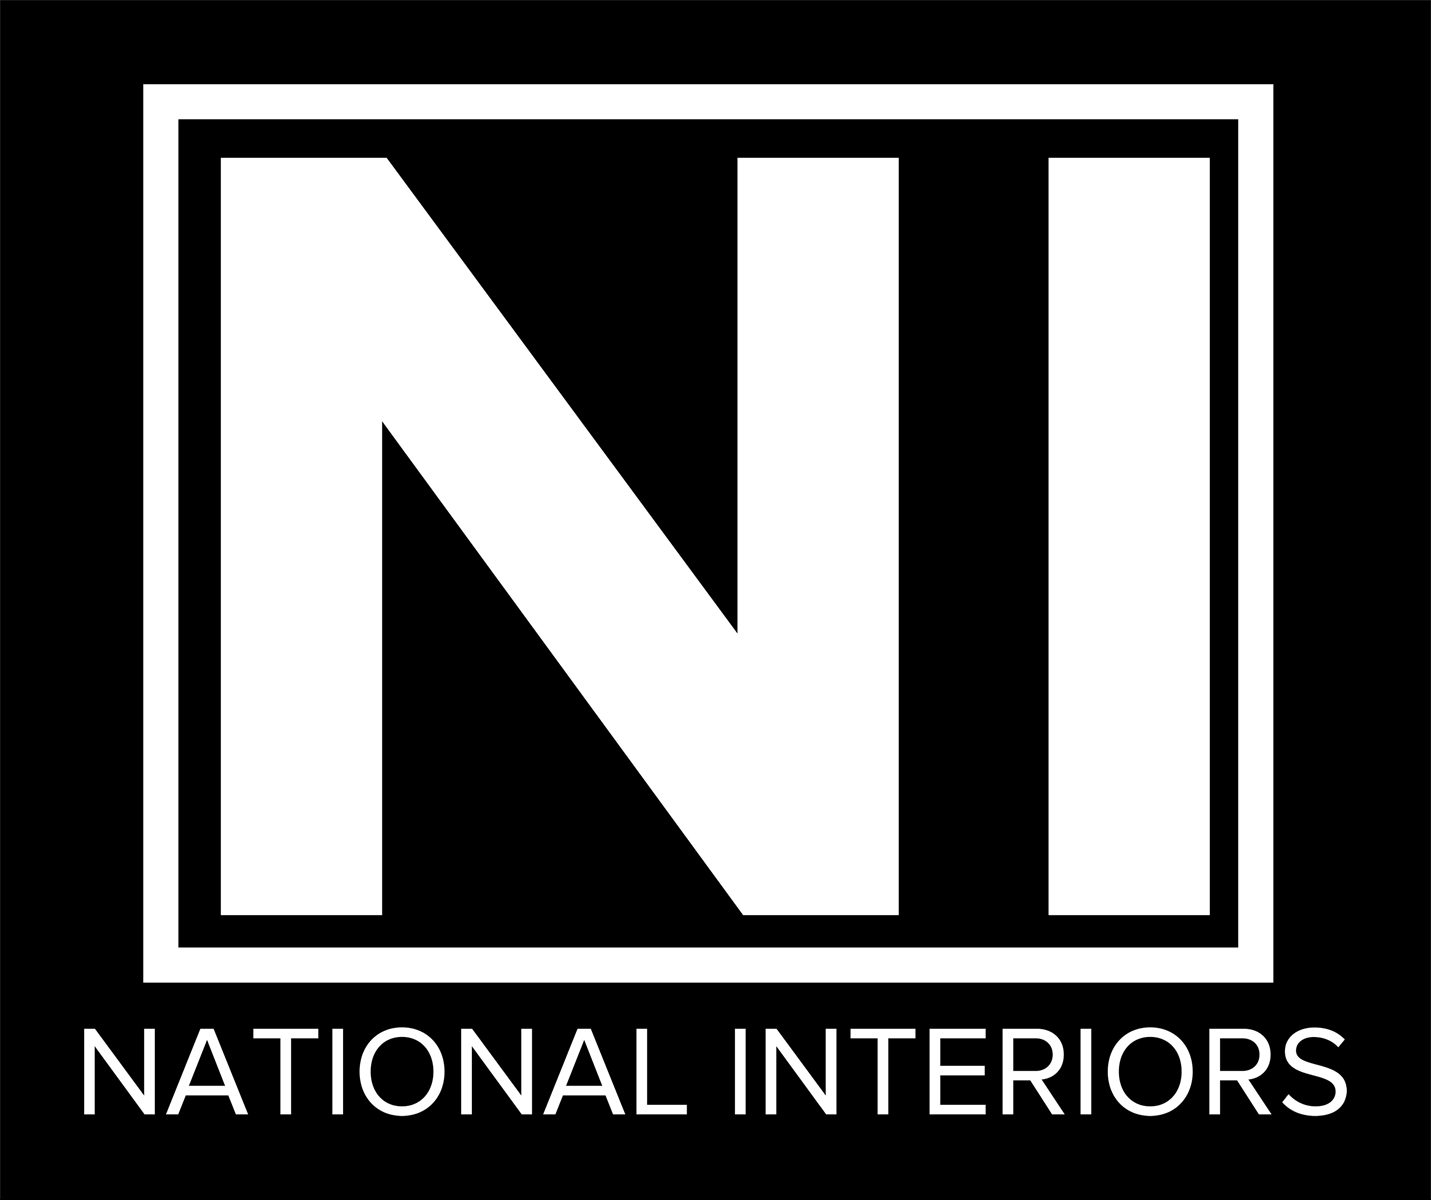 National Interiors